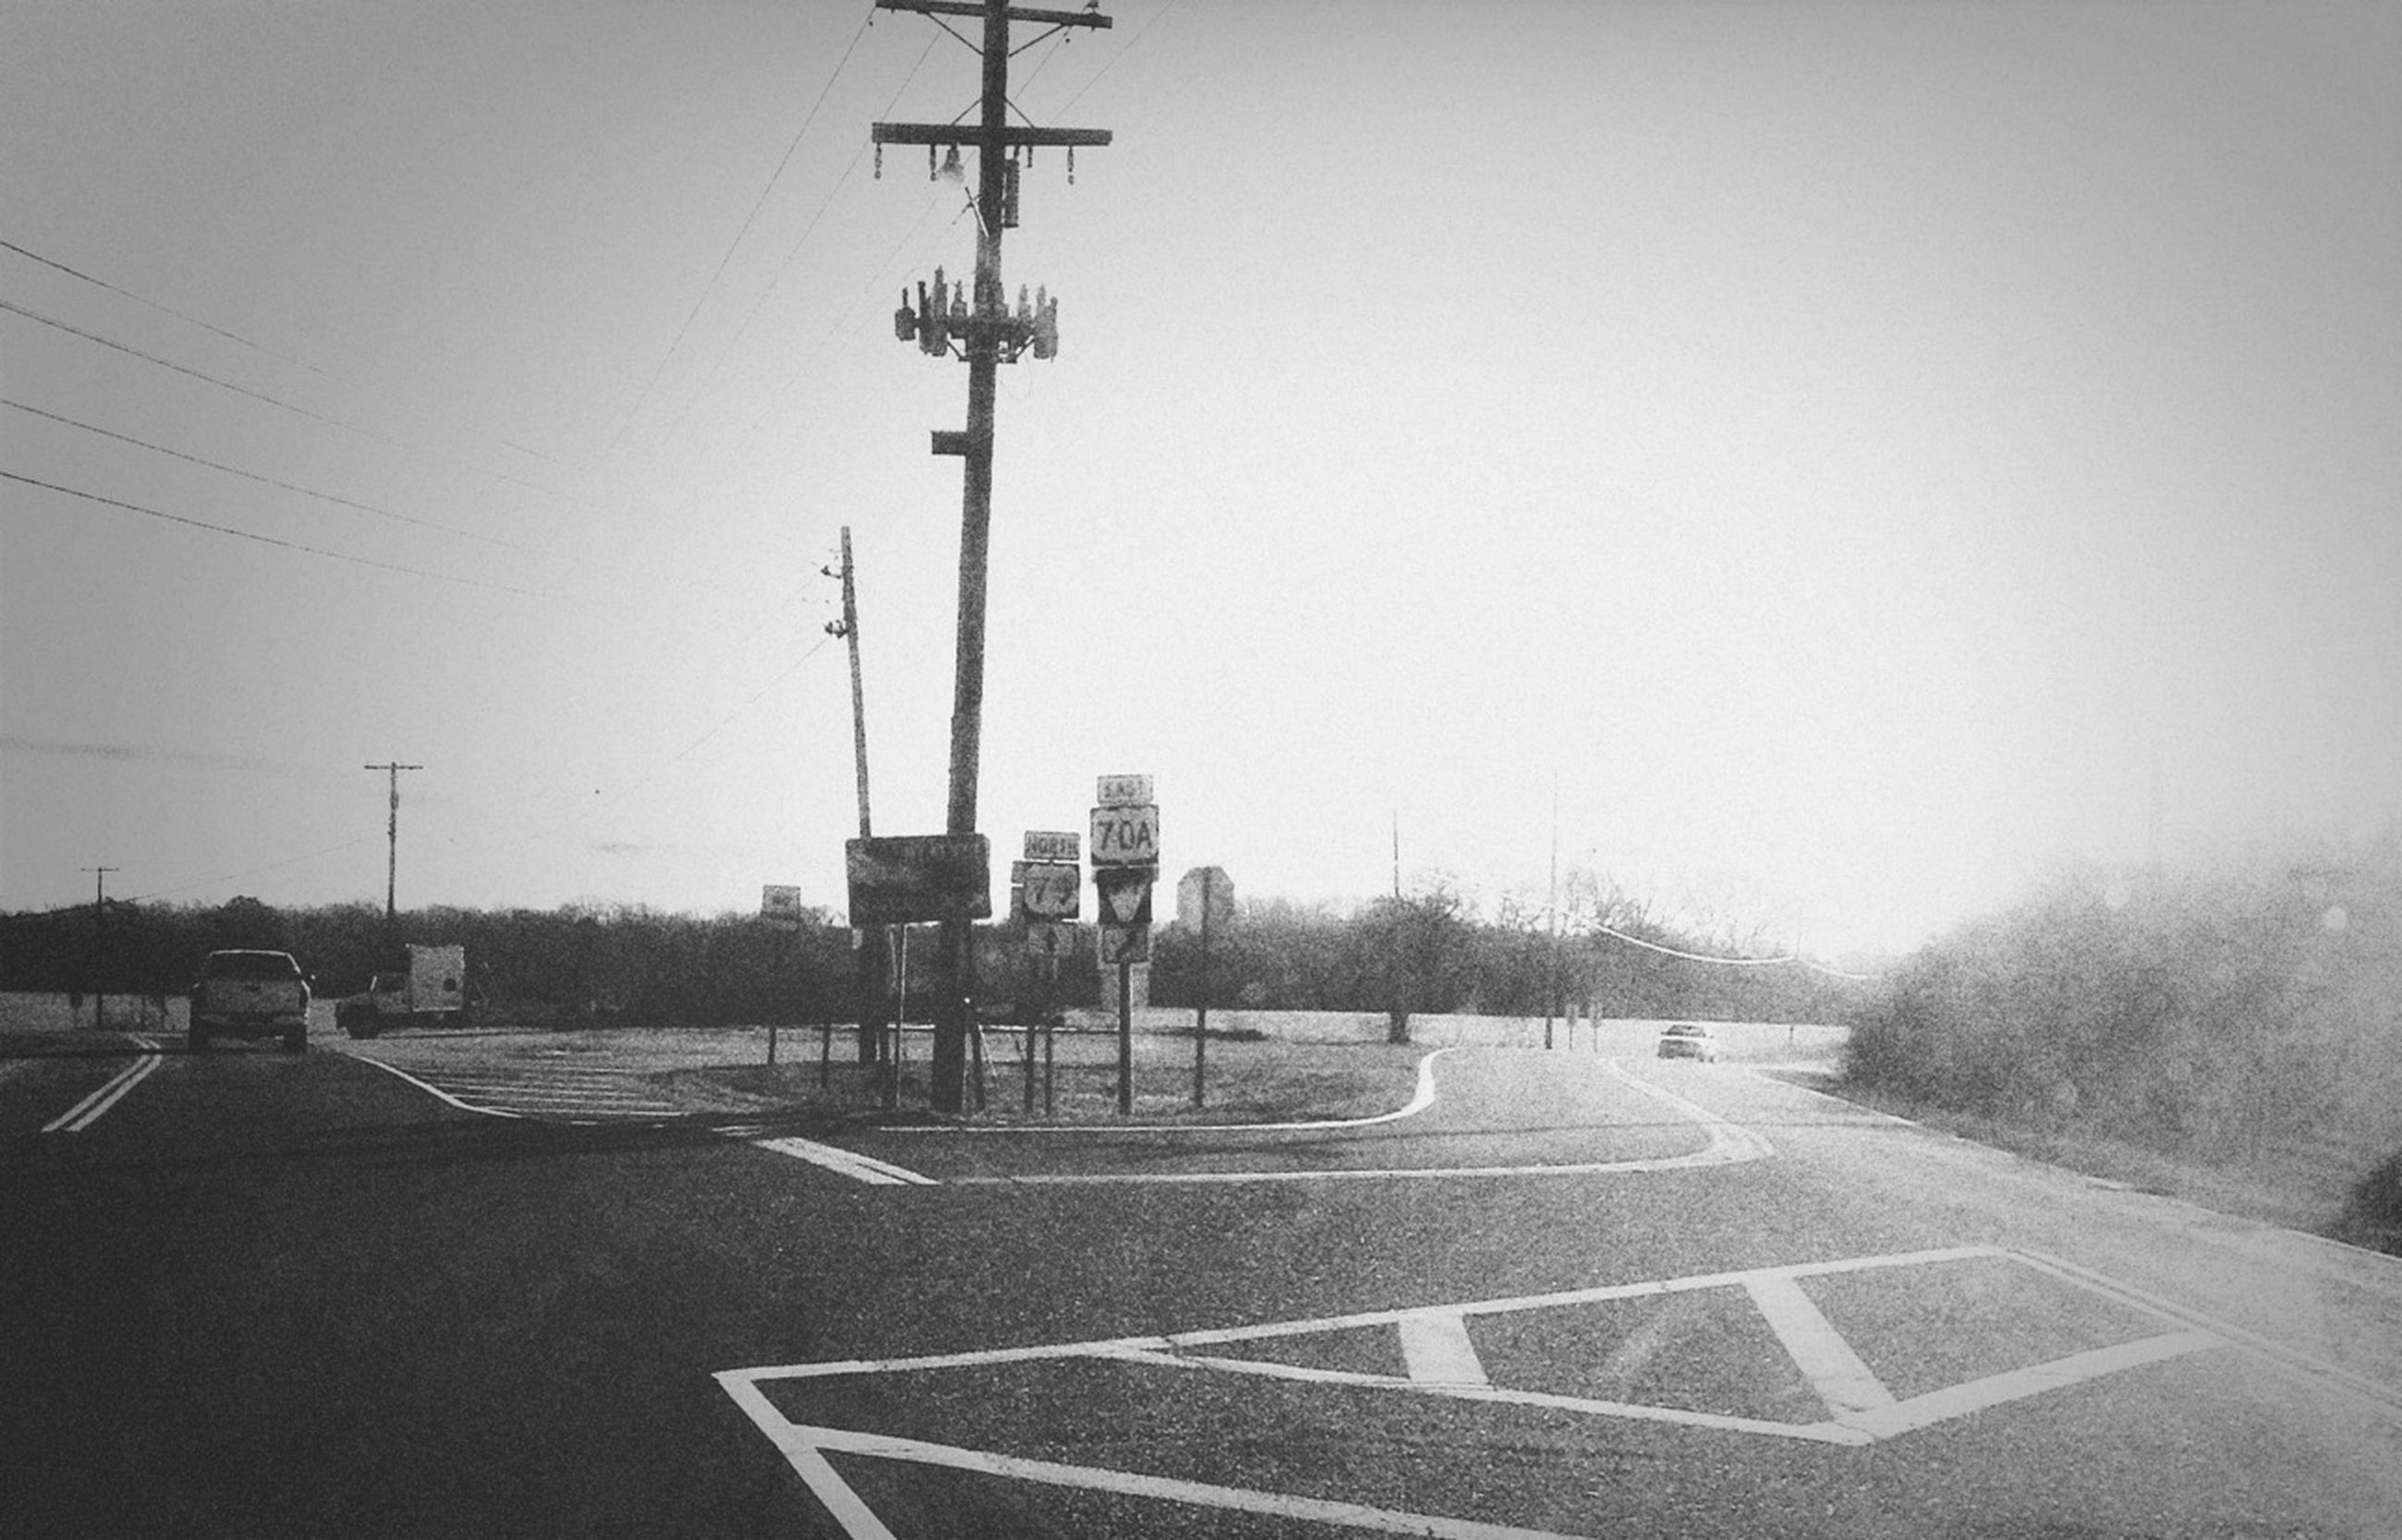 transportation, clear sky, road, mode of transport, street, the way forward, street light, car, copy space, road marking, land vehicle, day, electricity pylon, outdoors, sky, empty, no people, asphalt, power line, vanishing point